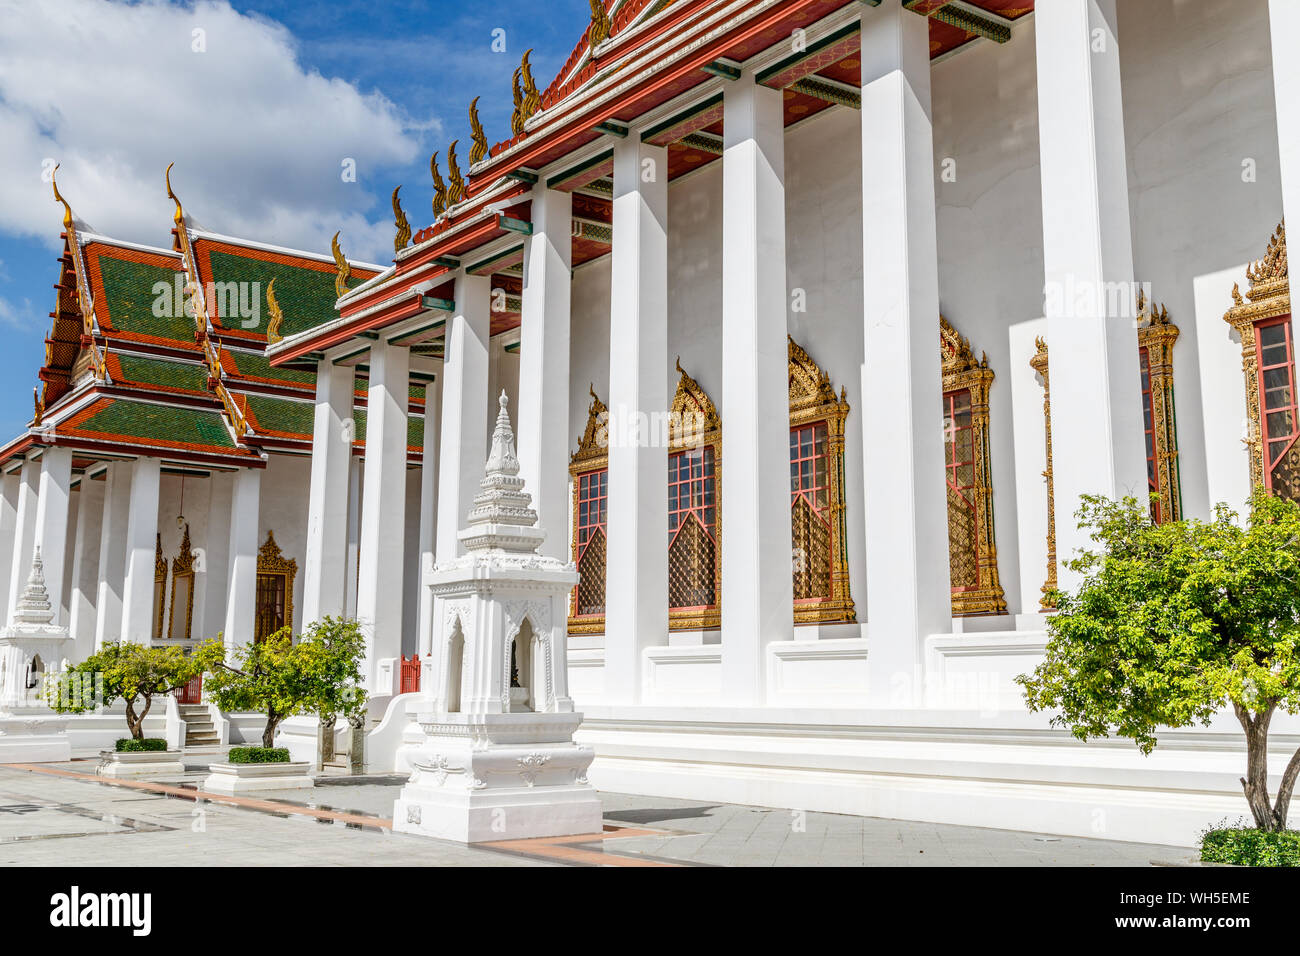 Big Thai style stupa (chediI) at Wat Thepthidaram, Bangkok, Thailand. Stock Photo